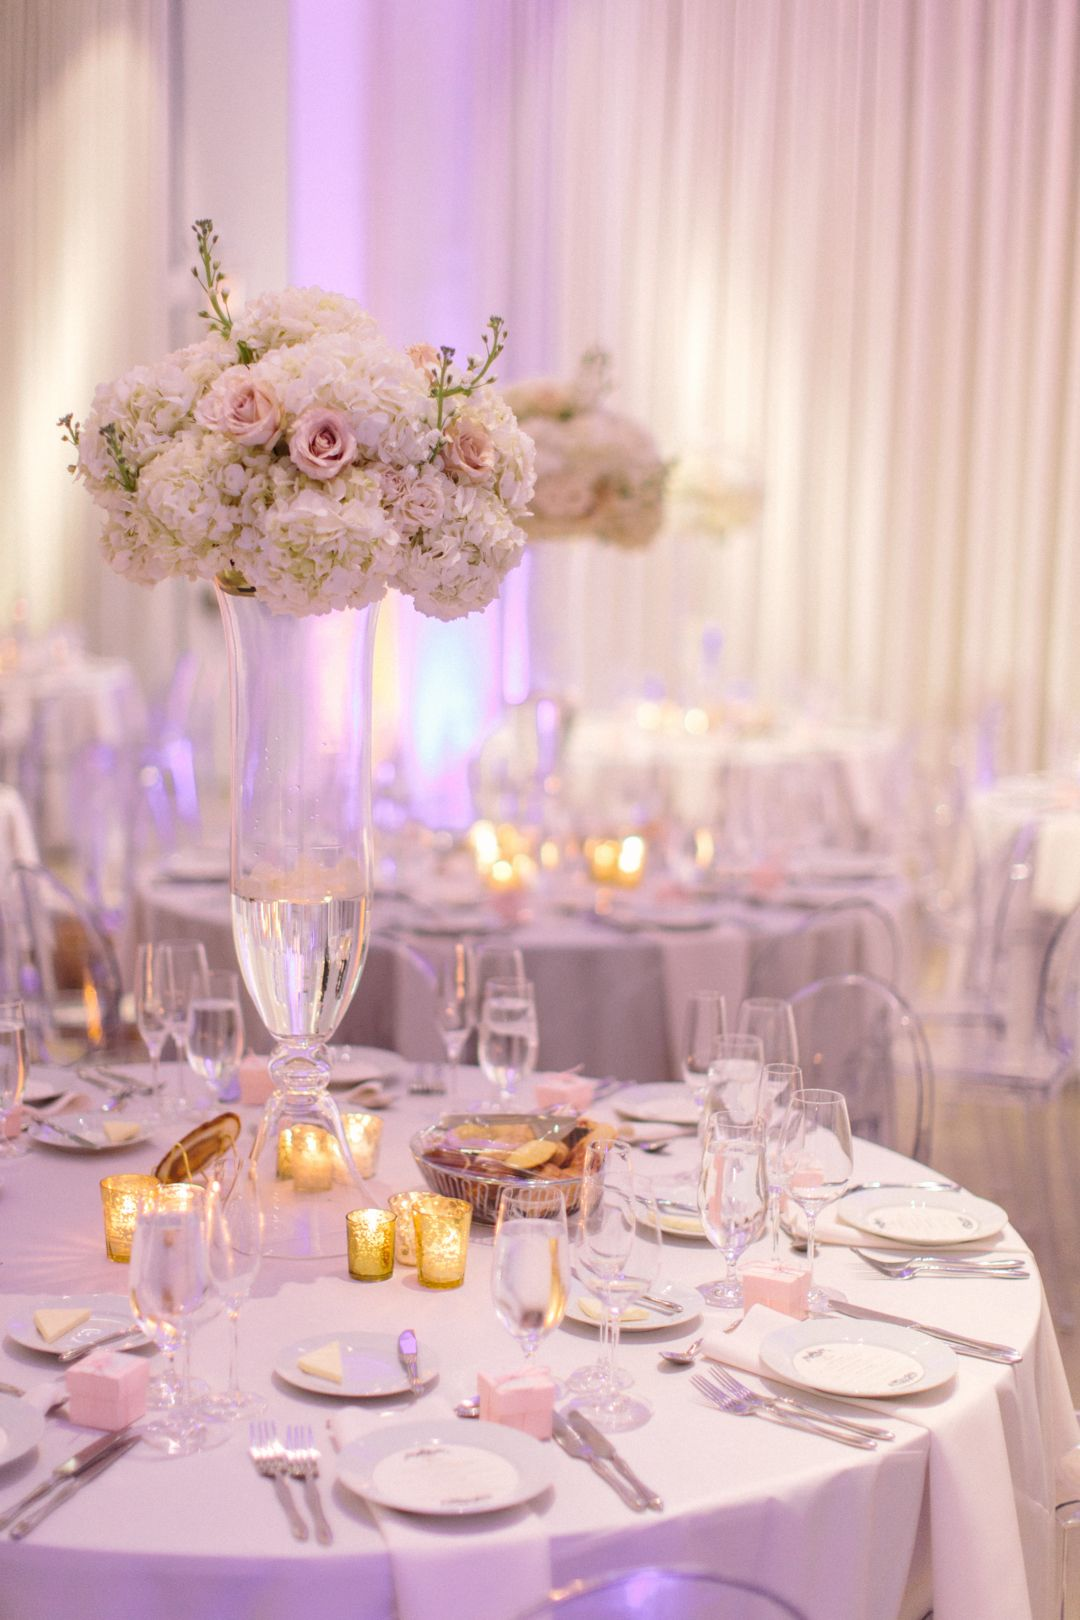 Wedding decor with ghost chairs  Minimalist and elegant wedding reception decor with white linens